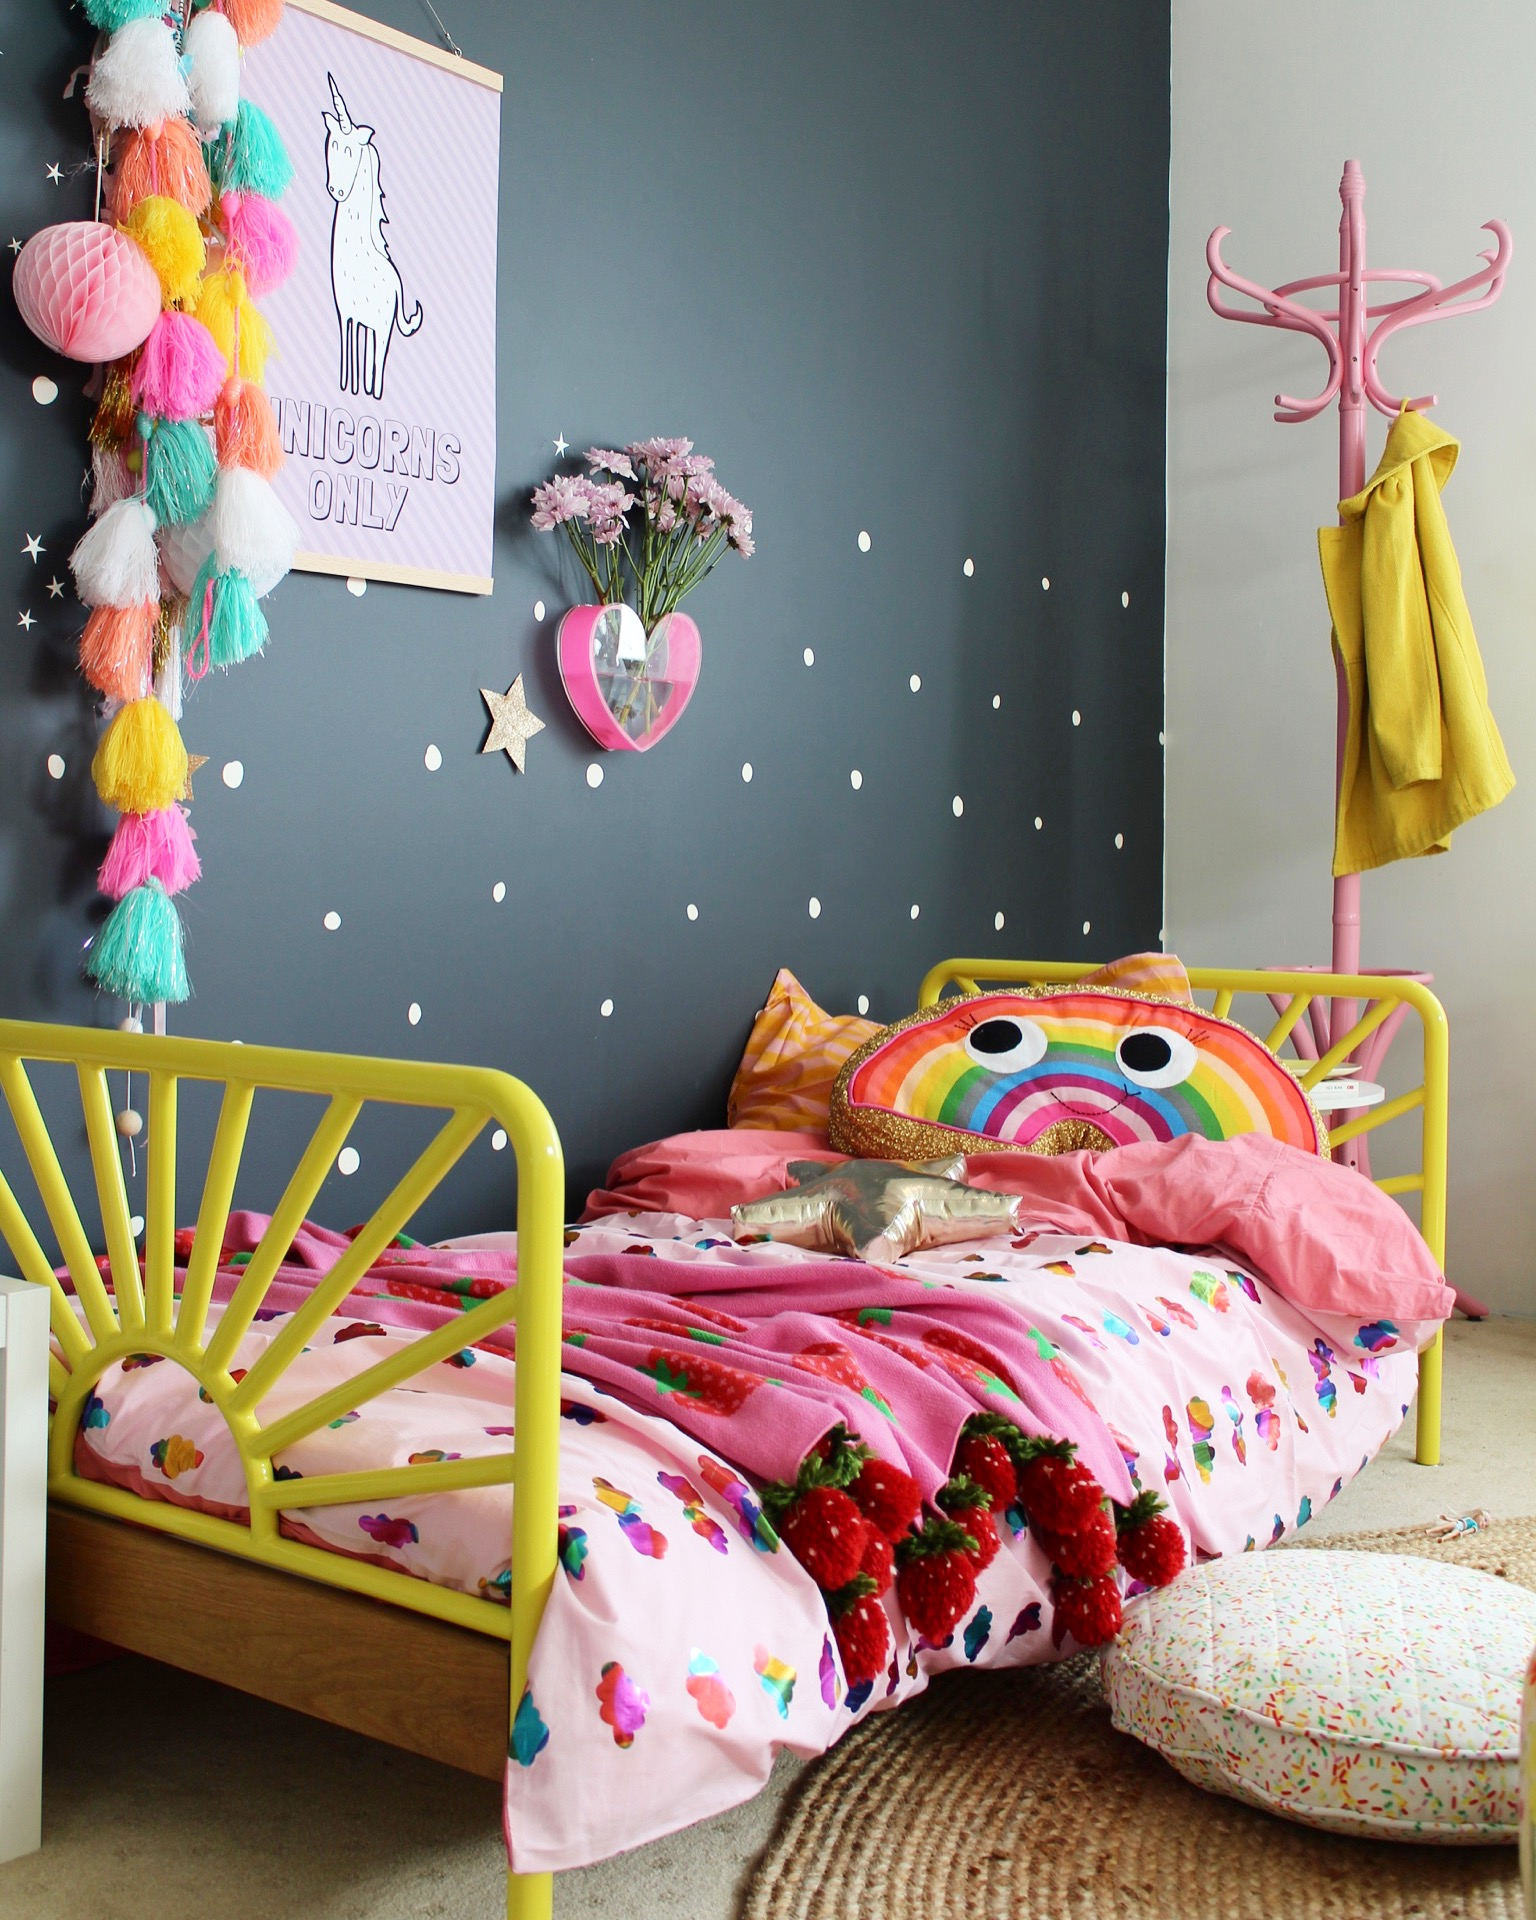 Kids bedroom ideas | cool toddler rooms, more pics on the blog